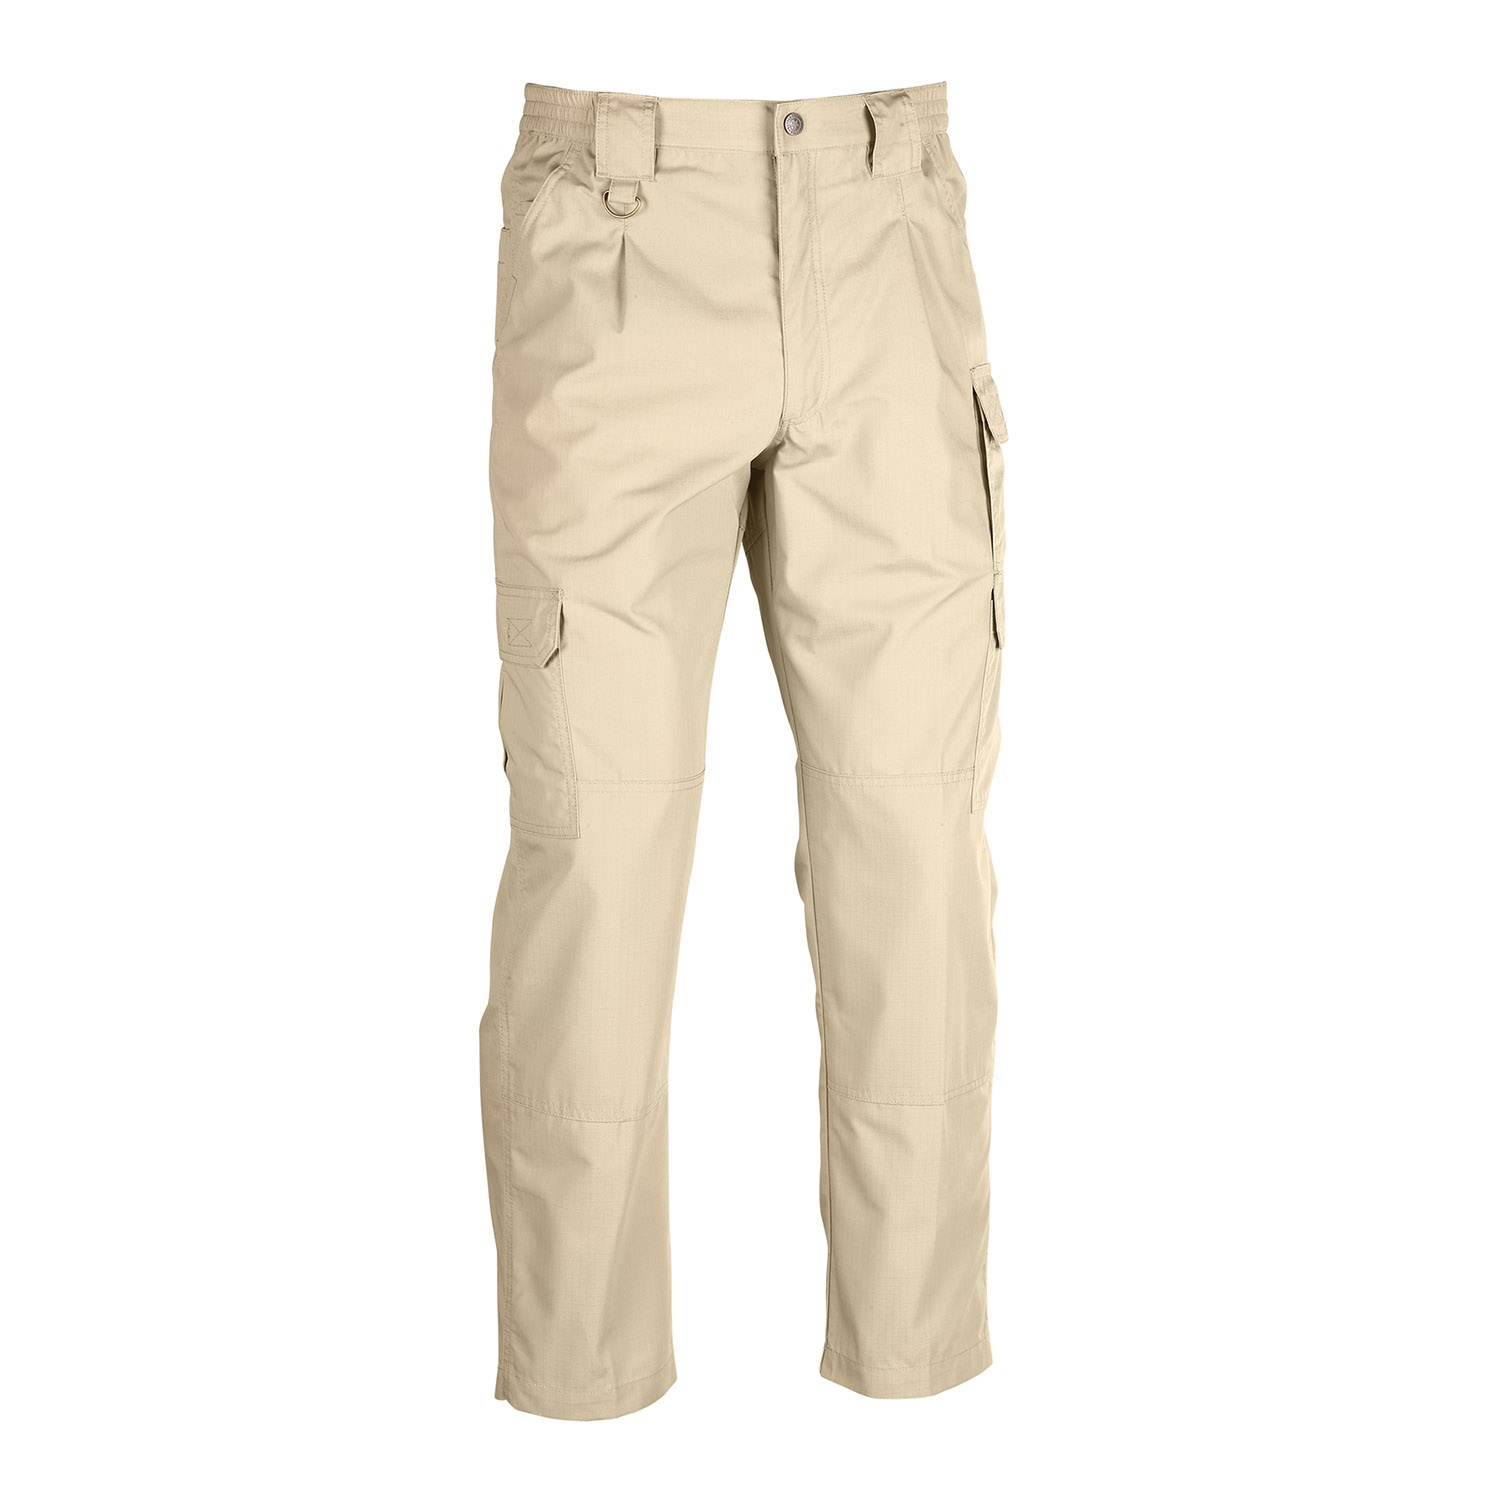 Propper Lightweight Tactical Trousers